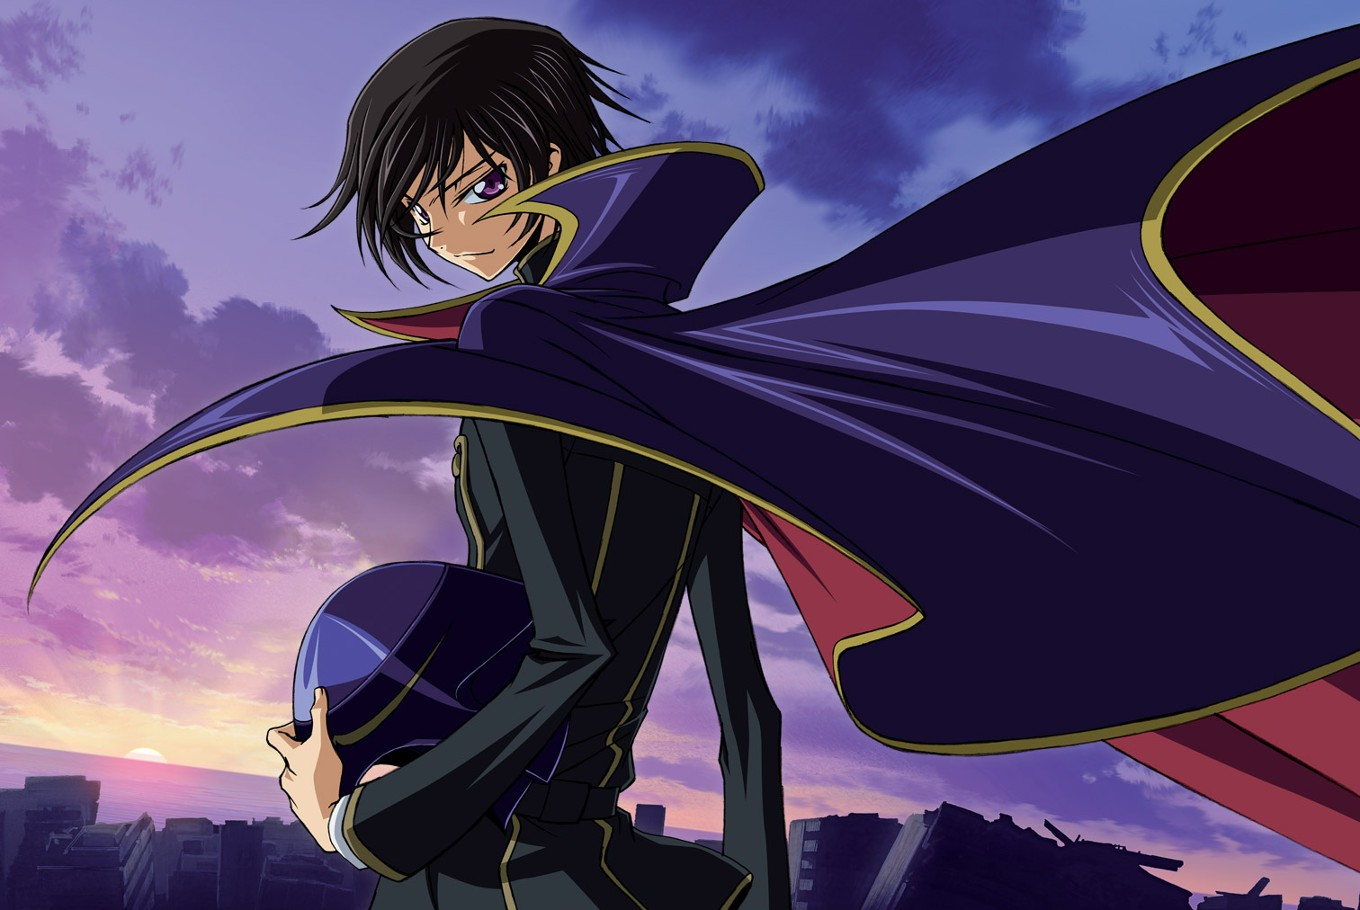 New 'Code Geass' trailer shows returning cast of characters